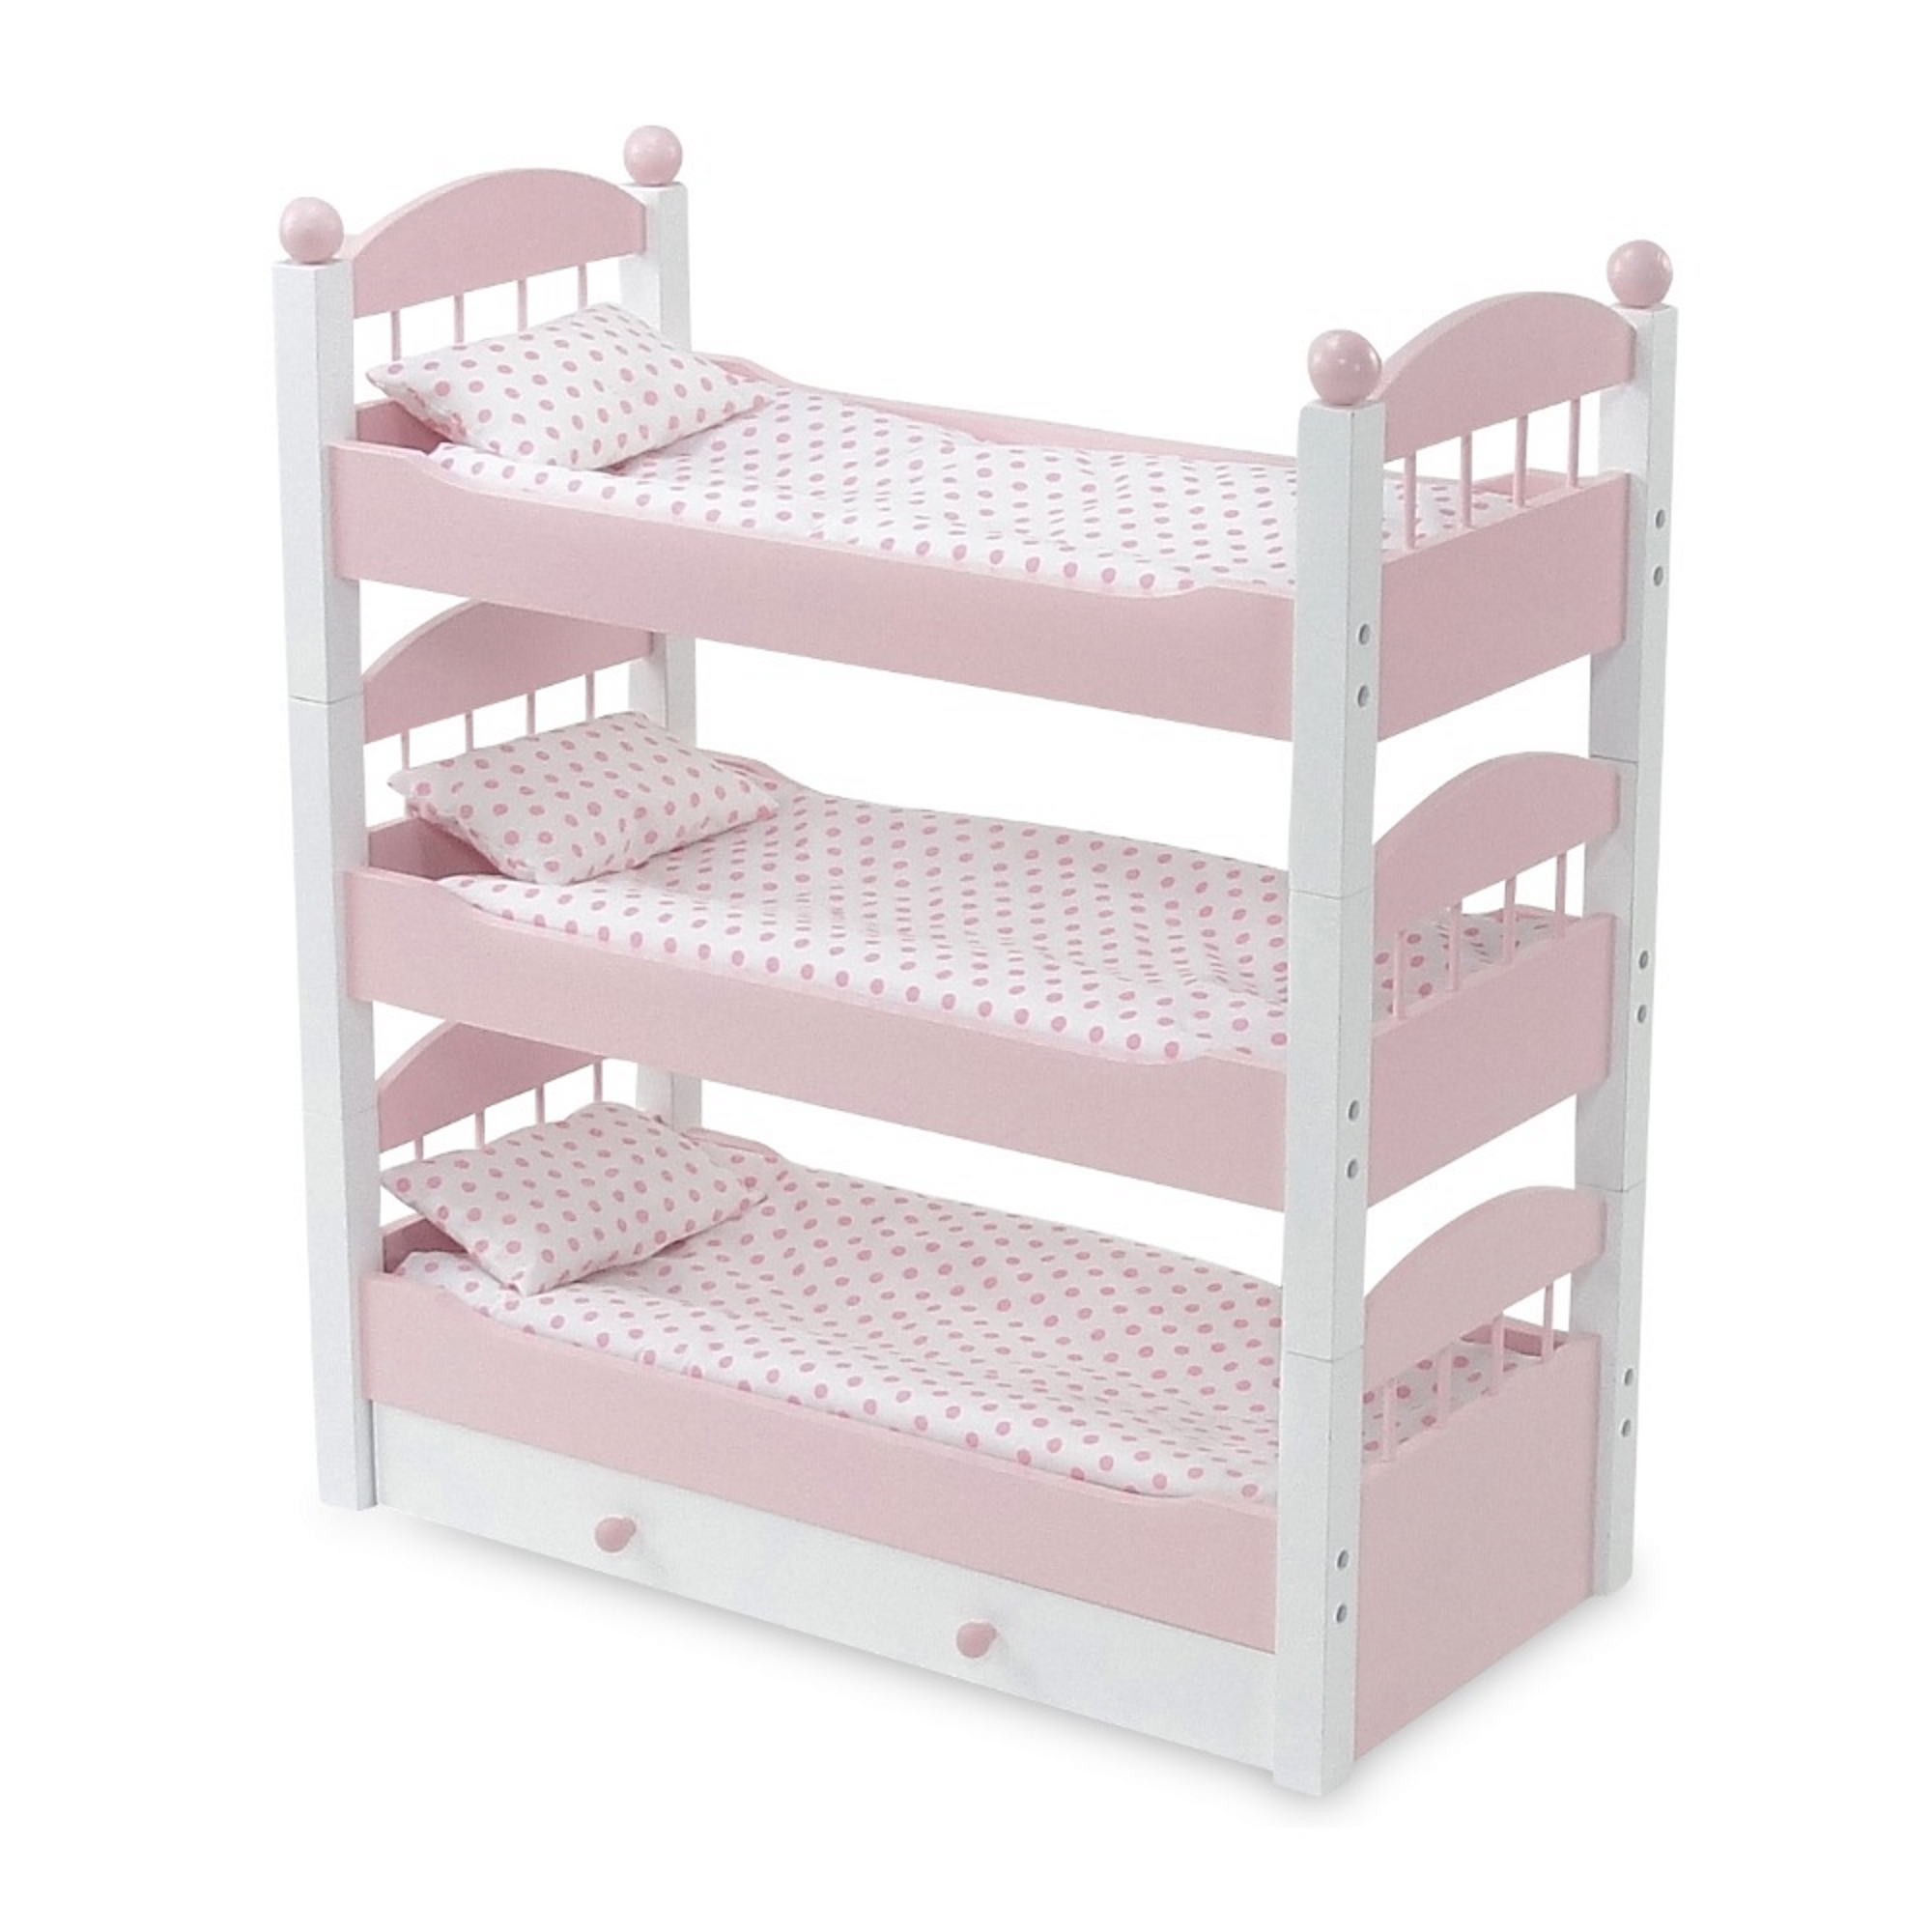 18 Inch Doll Furniture | Lovely Pink and White Stackable Triple Bunk Bed, Includes Trundle Drawer and Plush Polka Dot Bedding | Fits American Girl Dolls